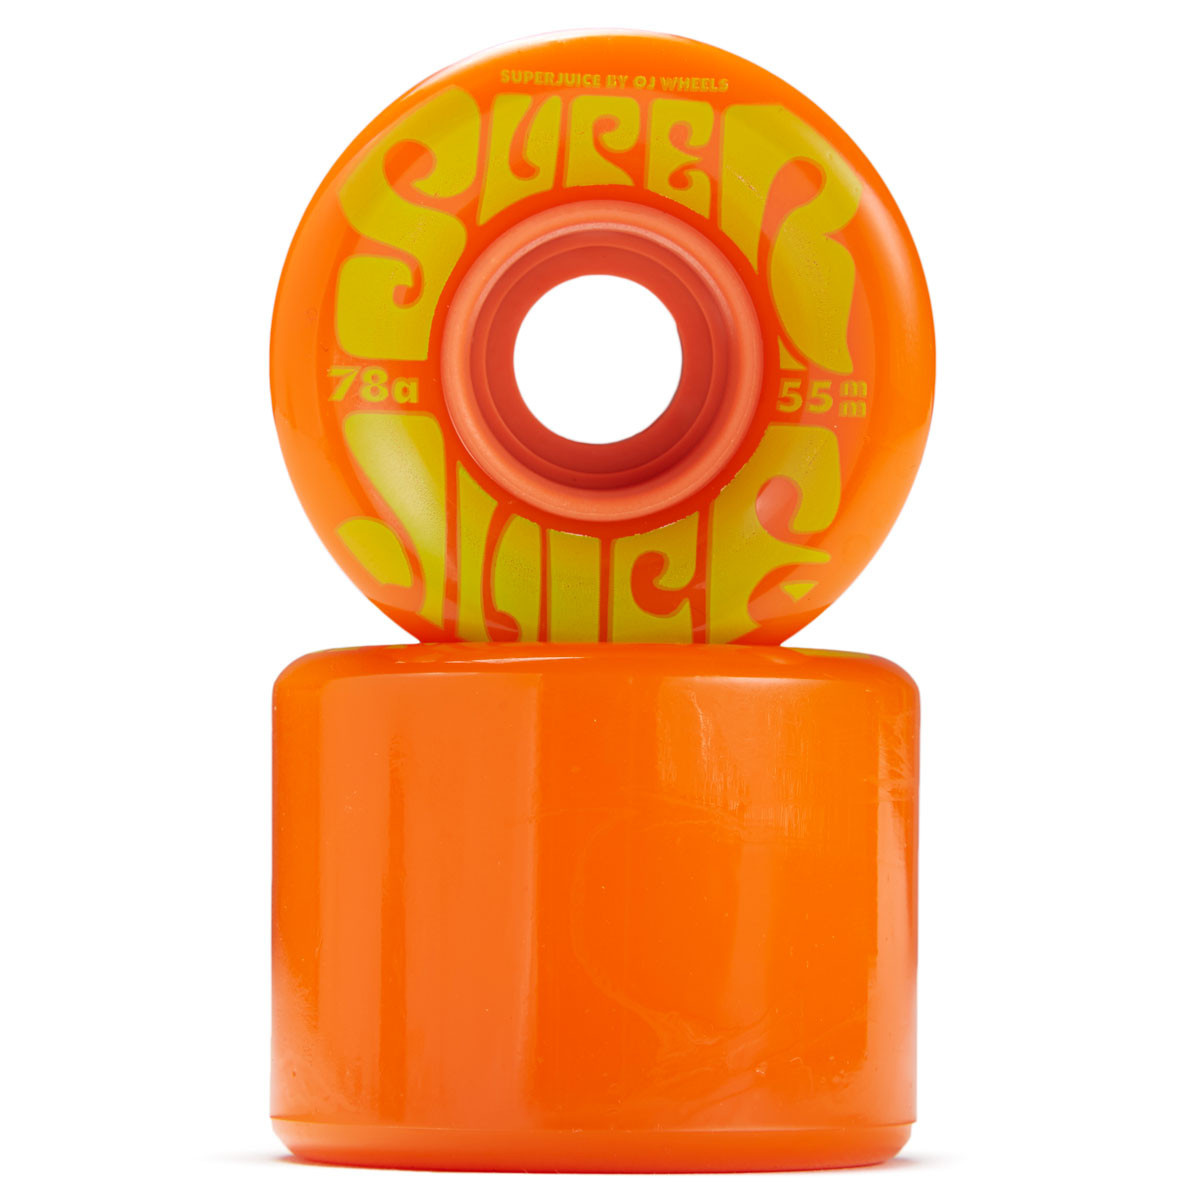 OJ WHEELS OJ WHEELS MINI SUPER JUICE ORANGE 78a 55mm